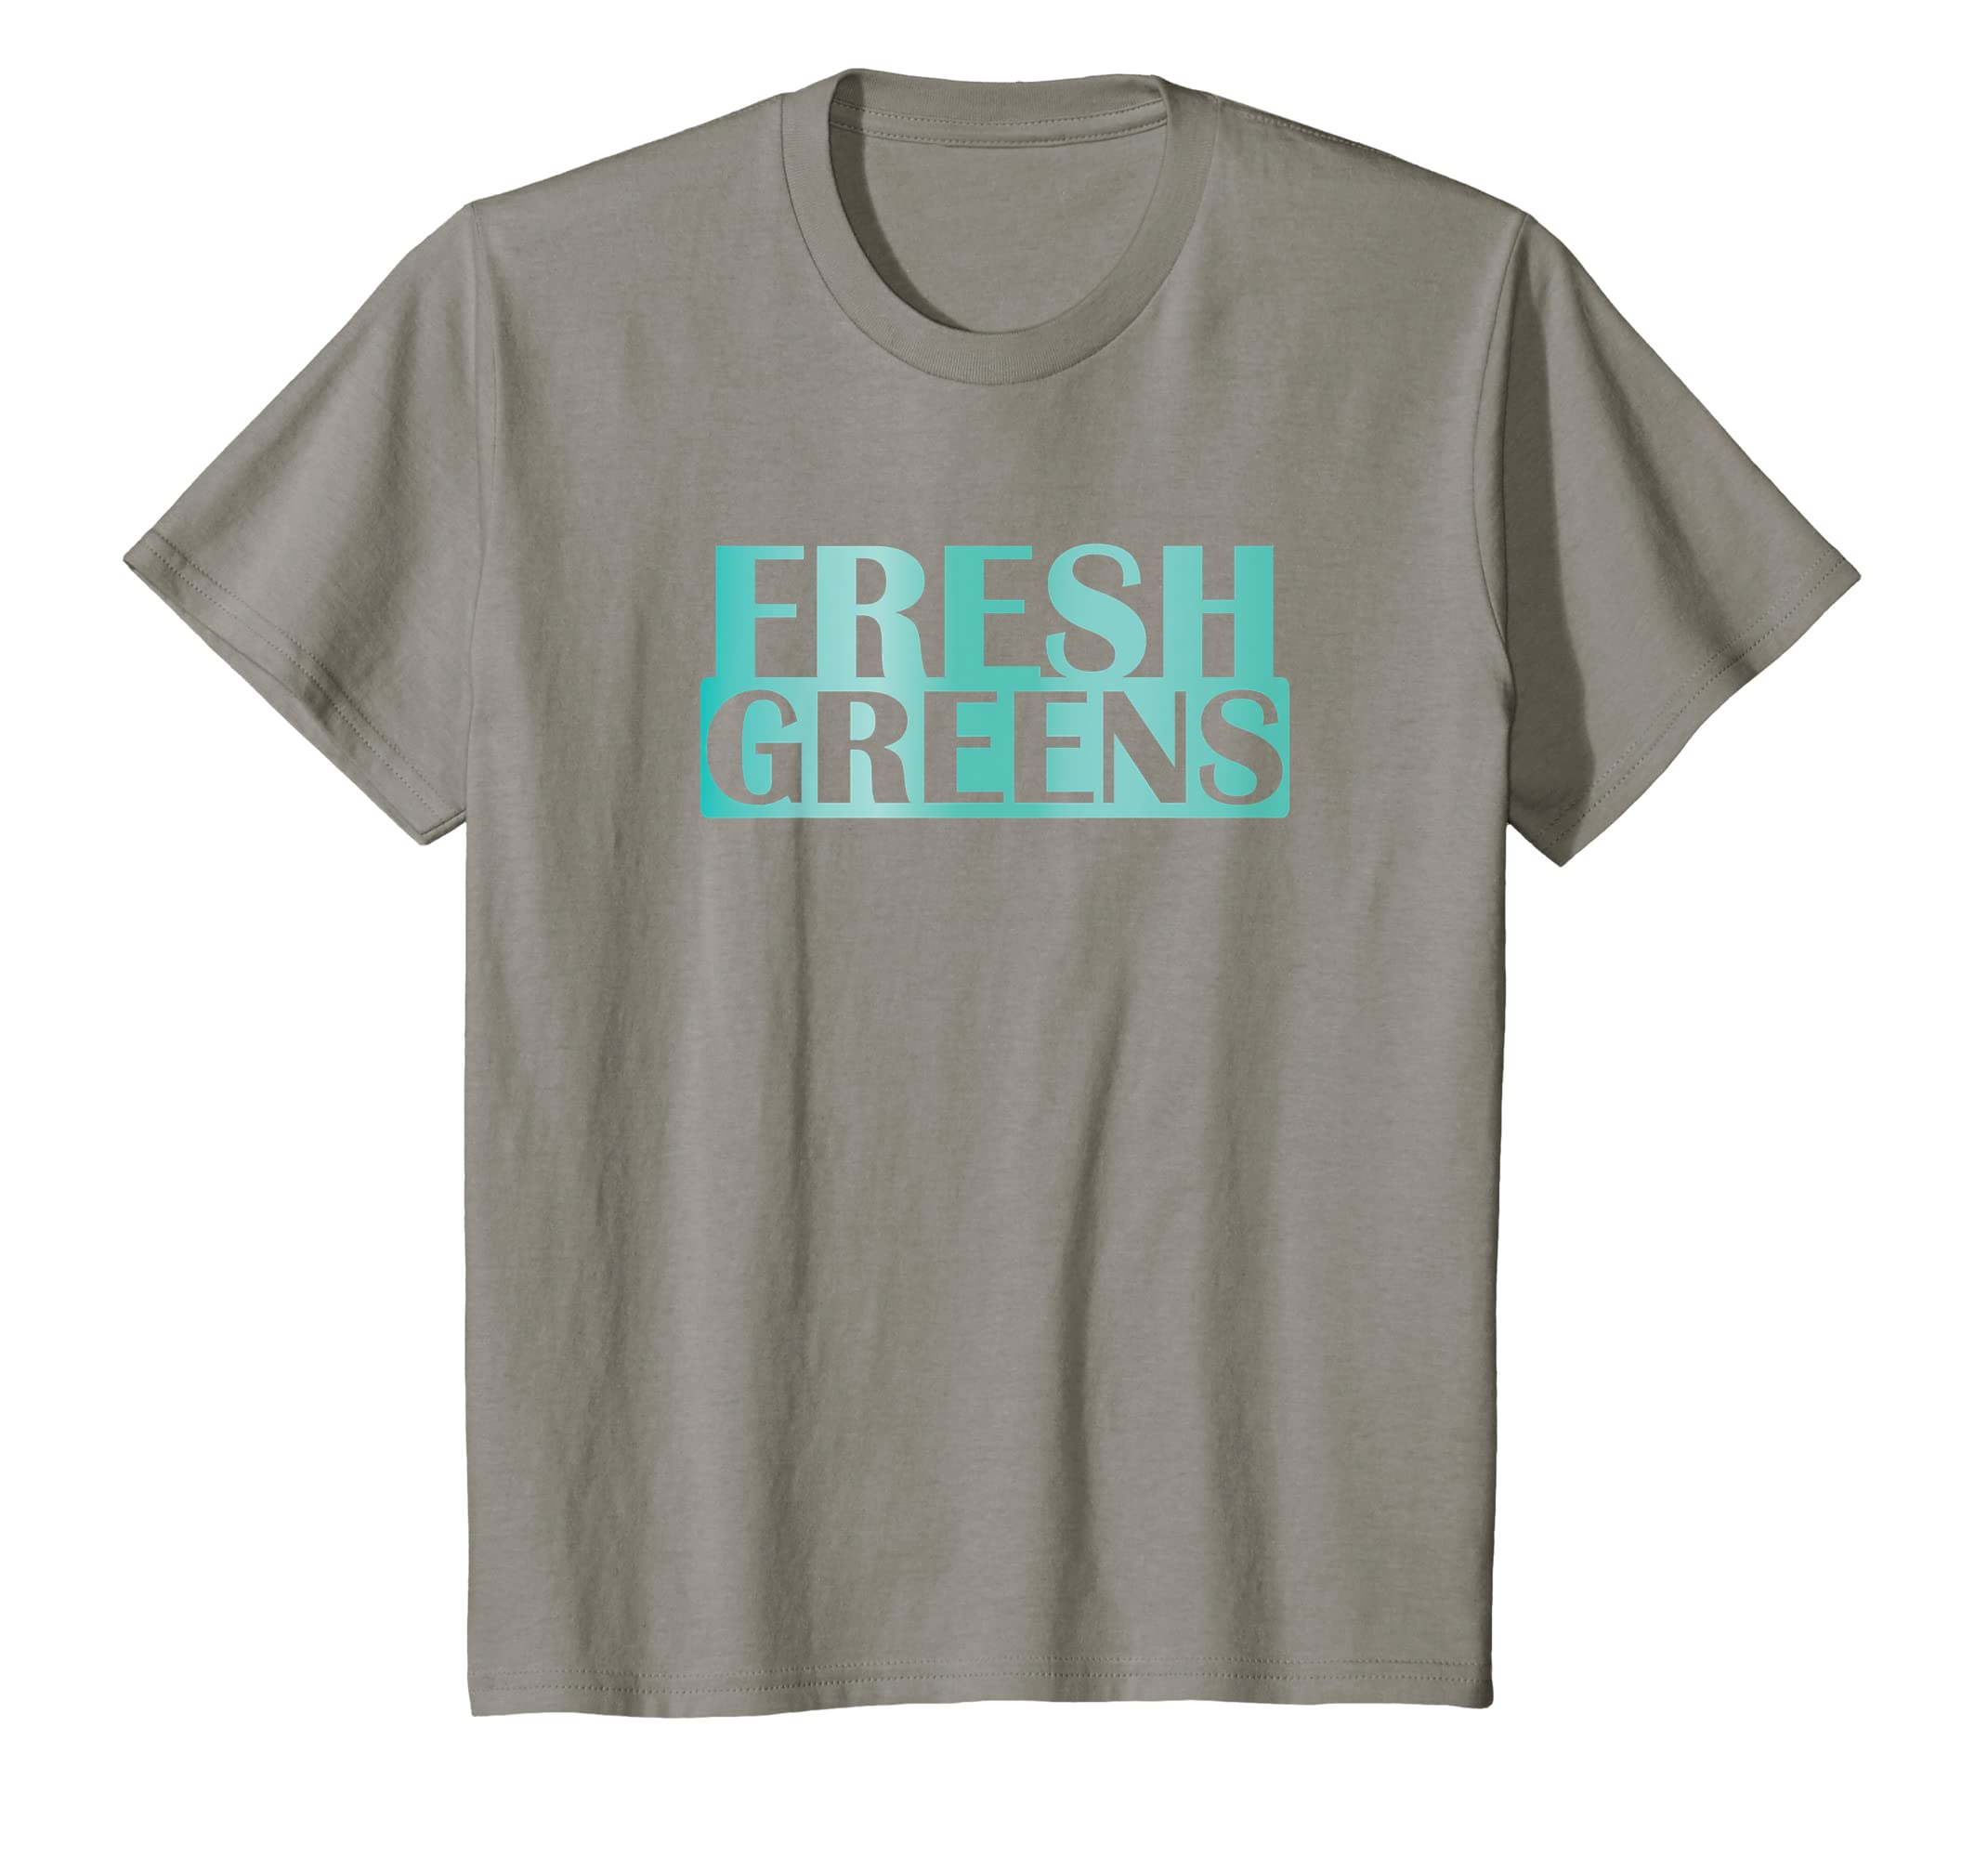 fc7084b57bcb6 Amazon.com  Fresh Greens Island Green Sneaker T-Shirt Foamposites  Clothing